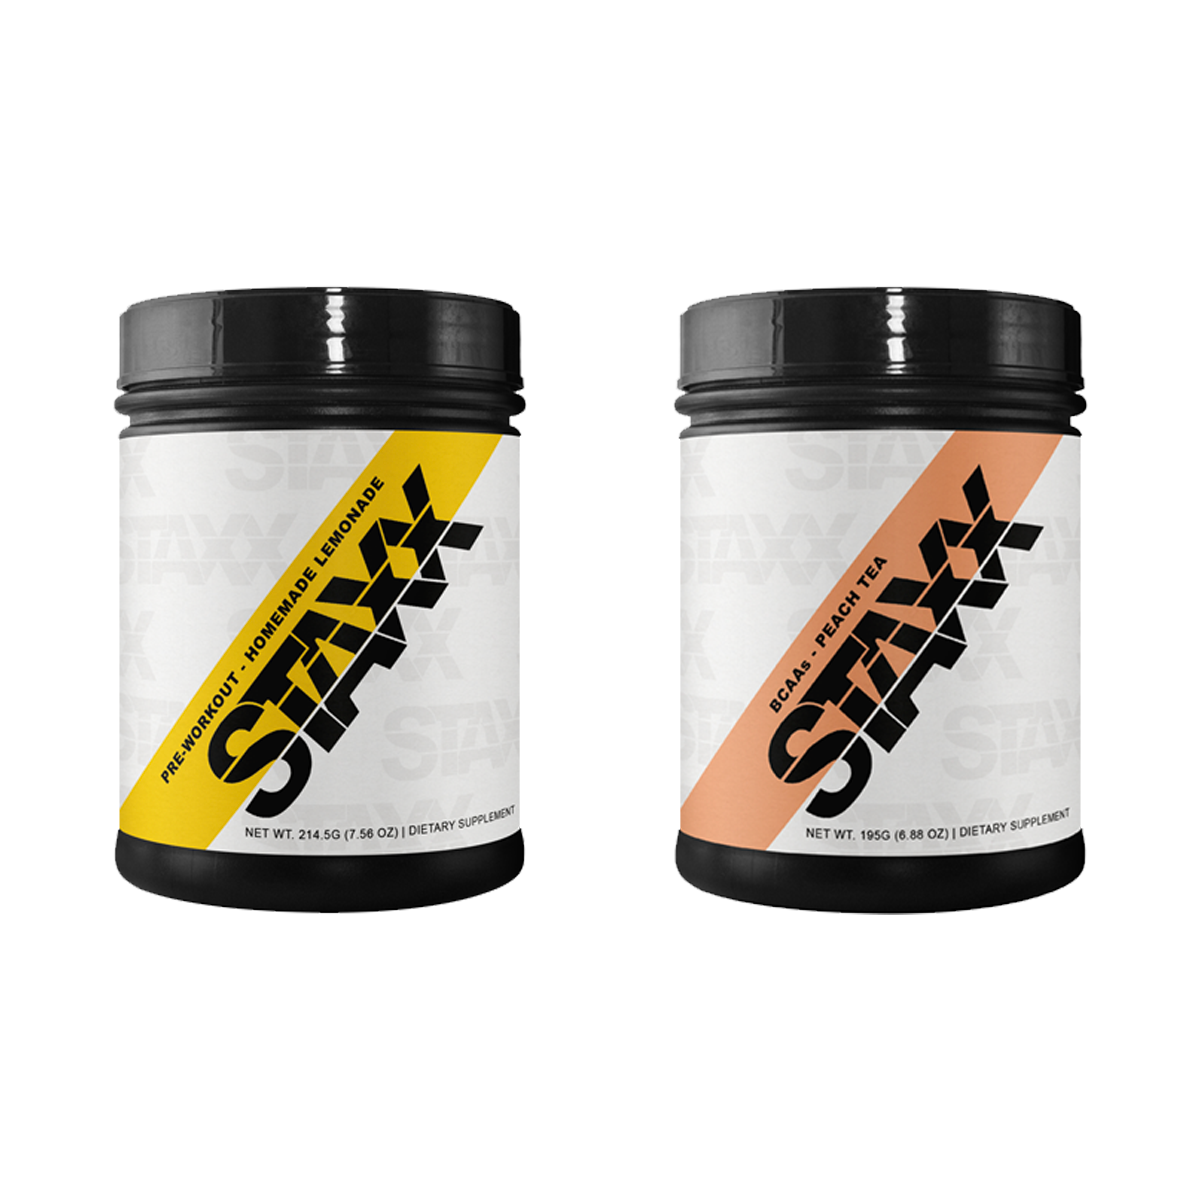 STAXX Pre-workout Lemonade and BCAAs Peach Tea